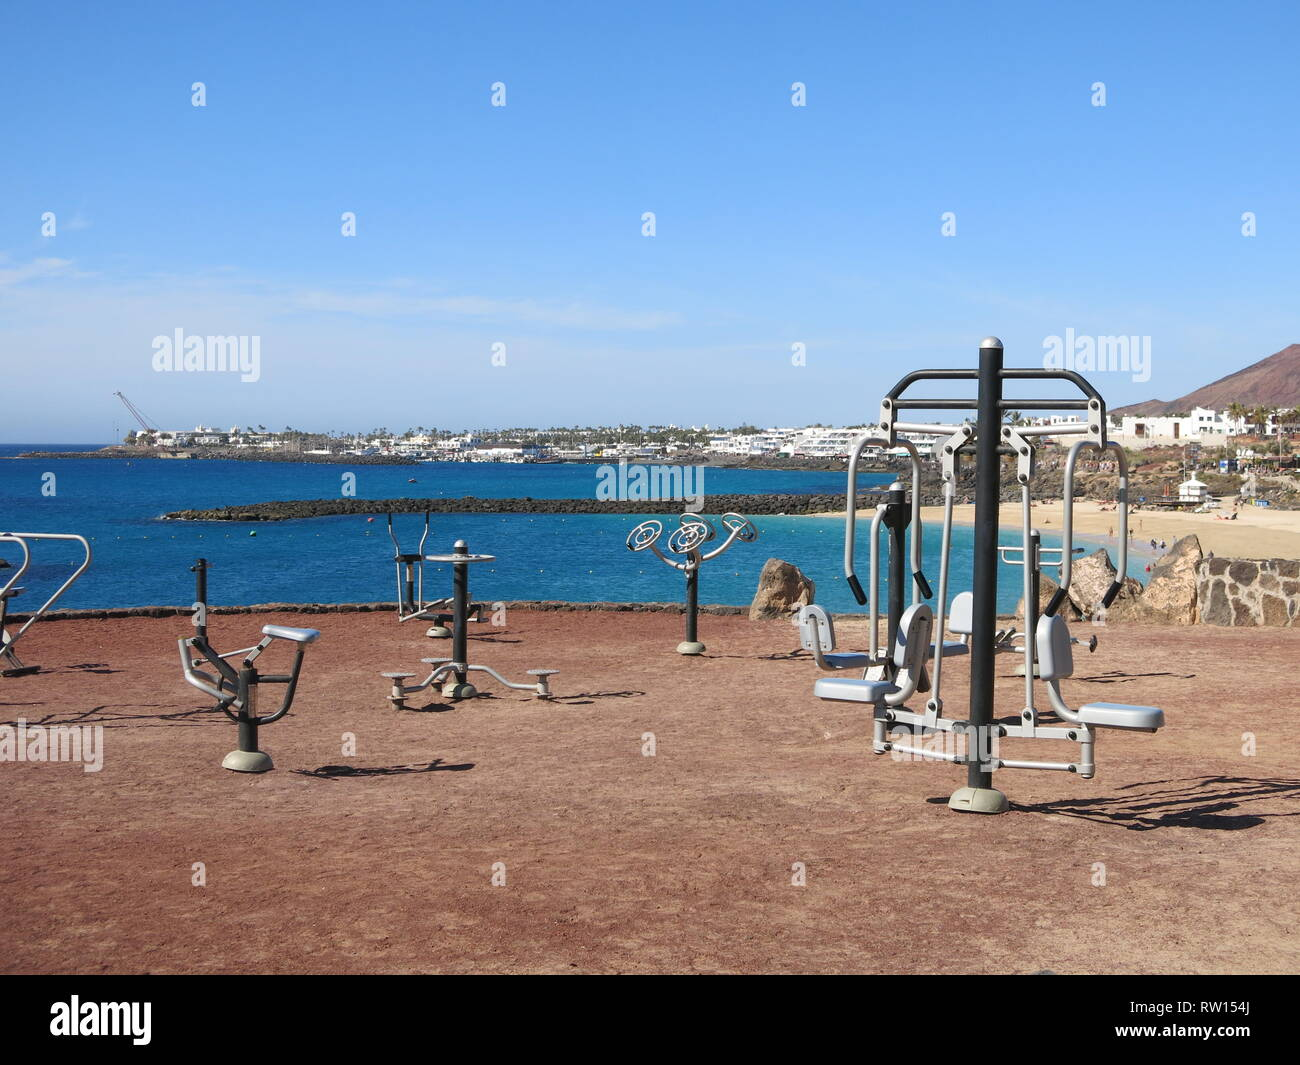 A range of outdoor exercise equipment on the shoreline at Playa Blanca, Lanzarote; keep fit in the fresh air and sunshine whilst admiring the view. - Stock Image